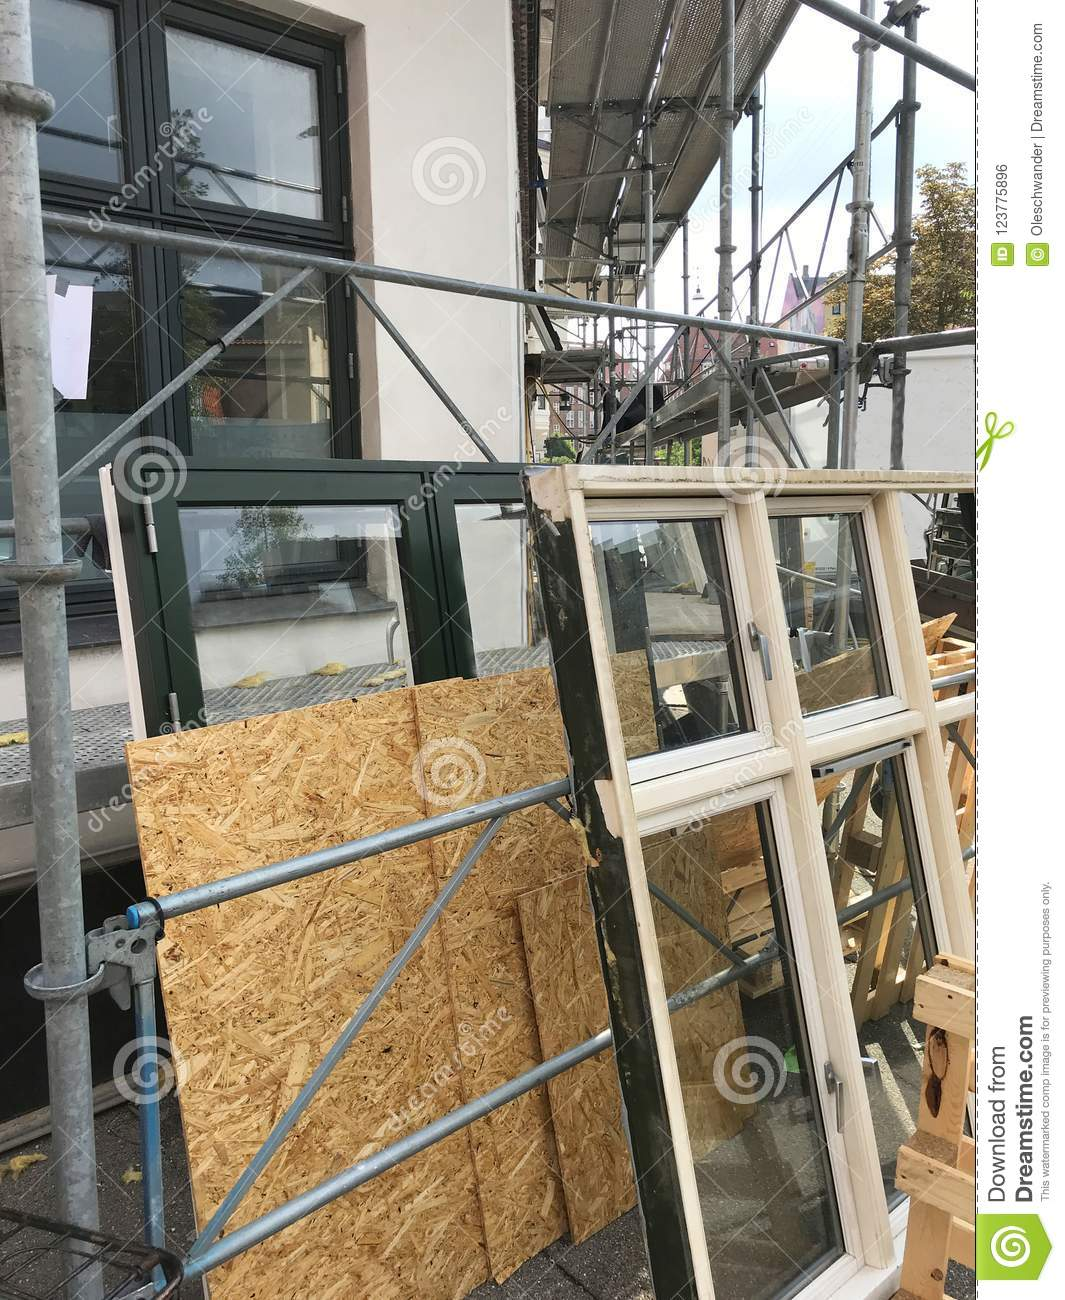 Replacing windows with new ones - building energy efficiency - stock